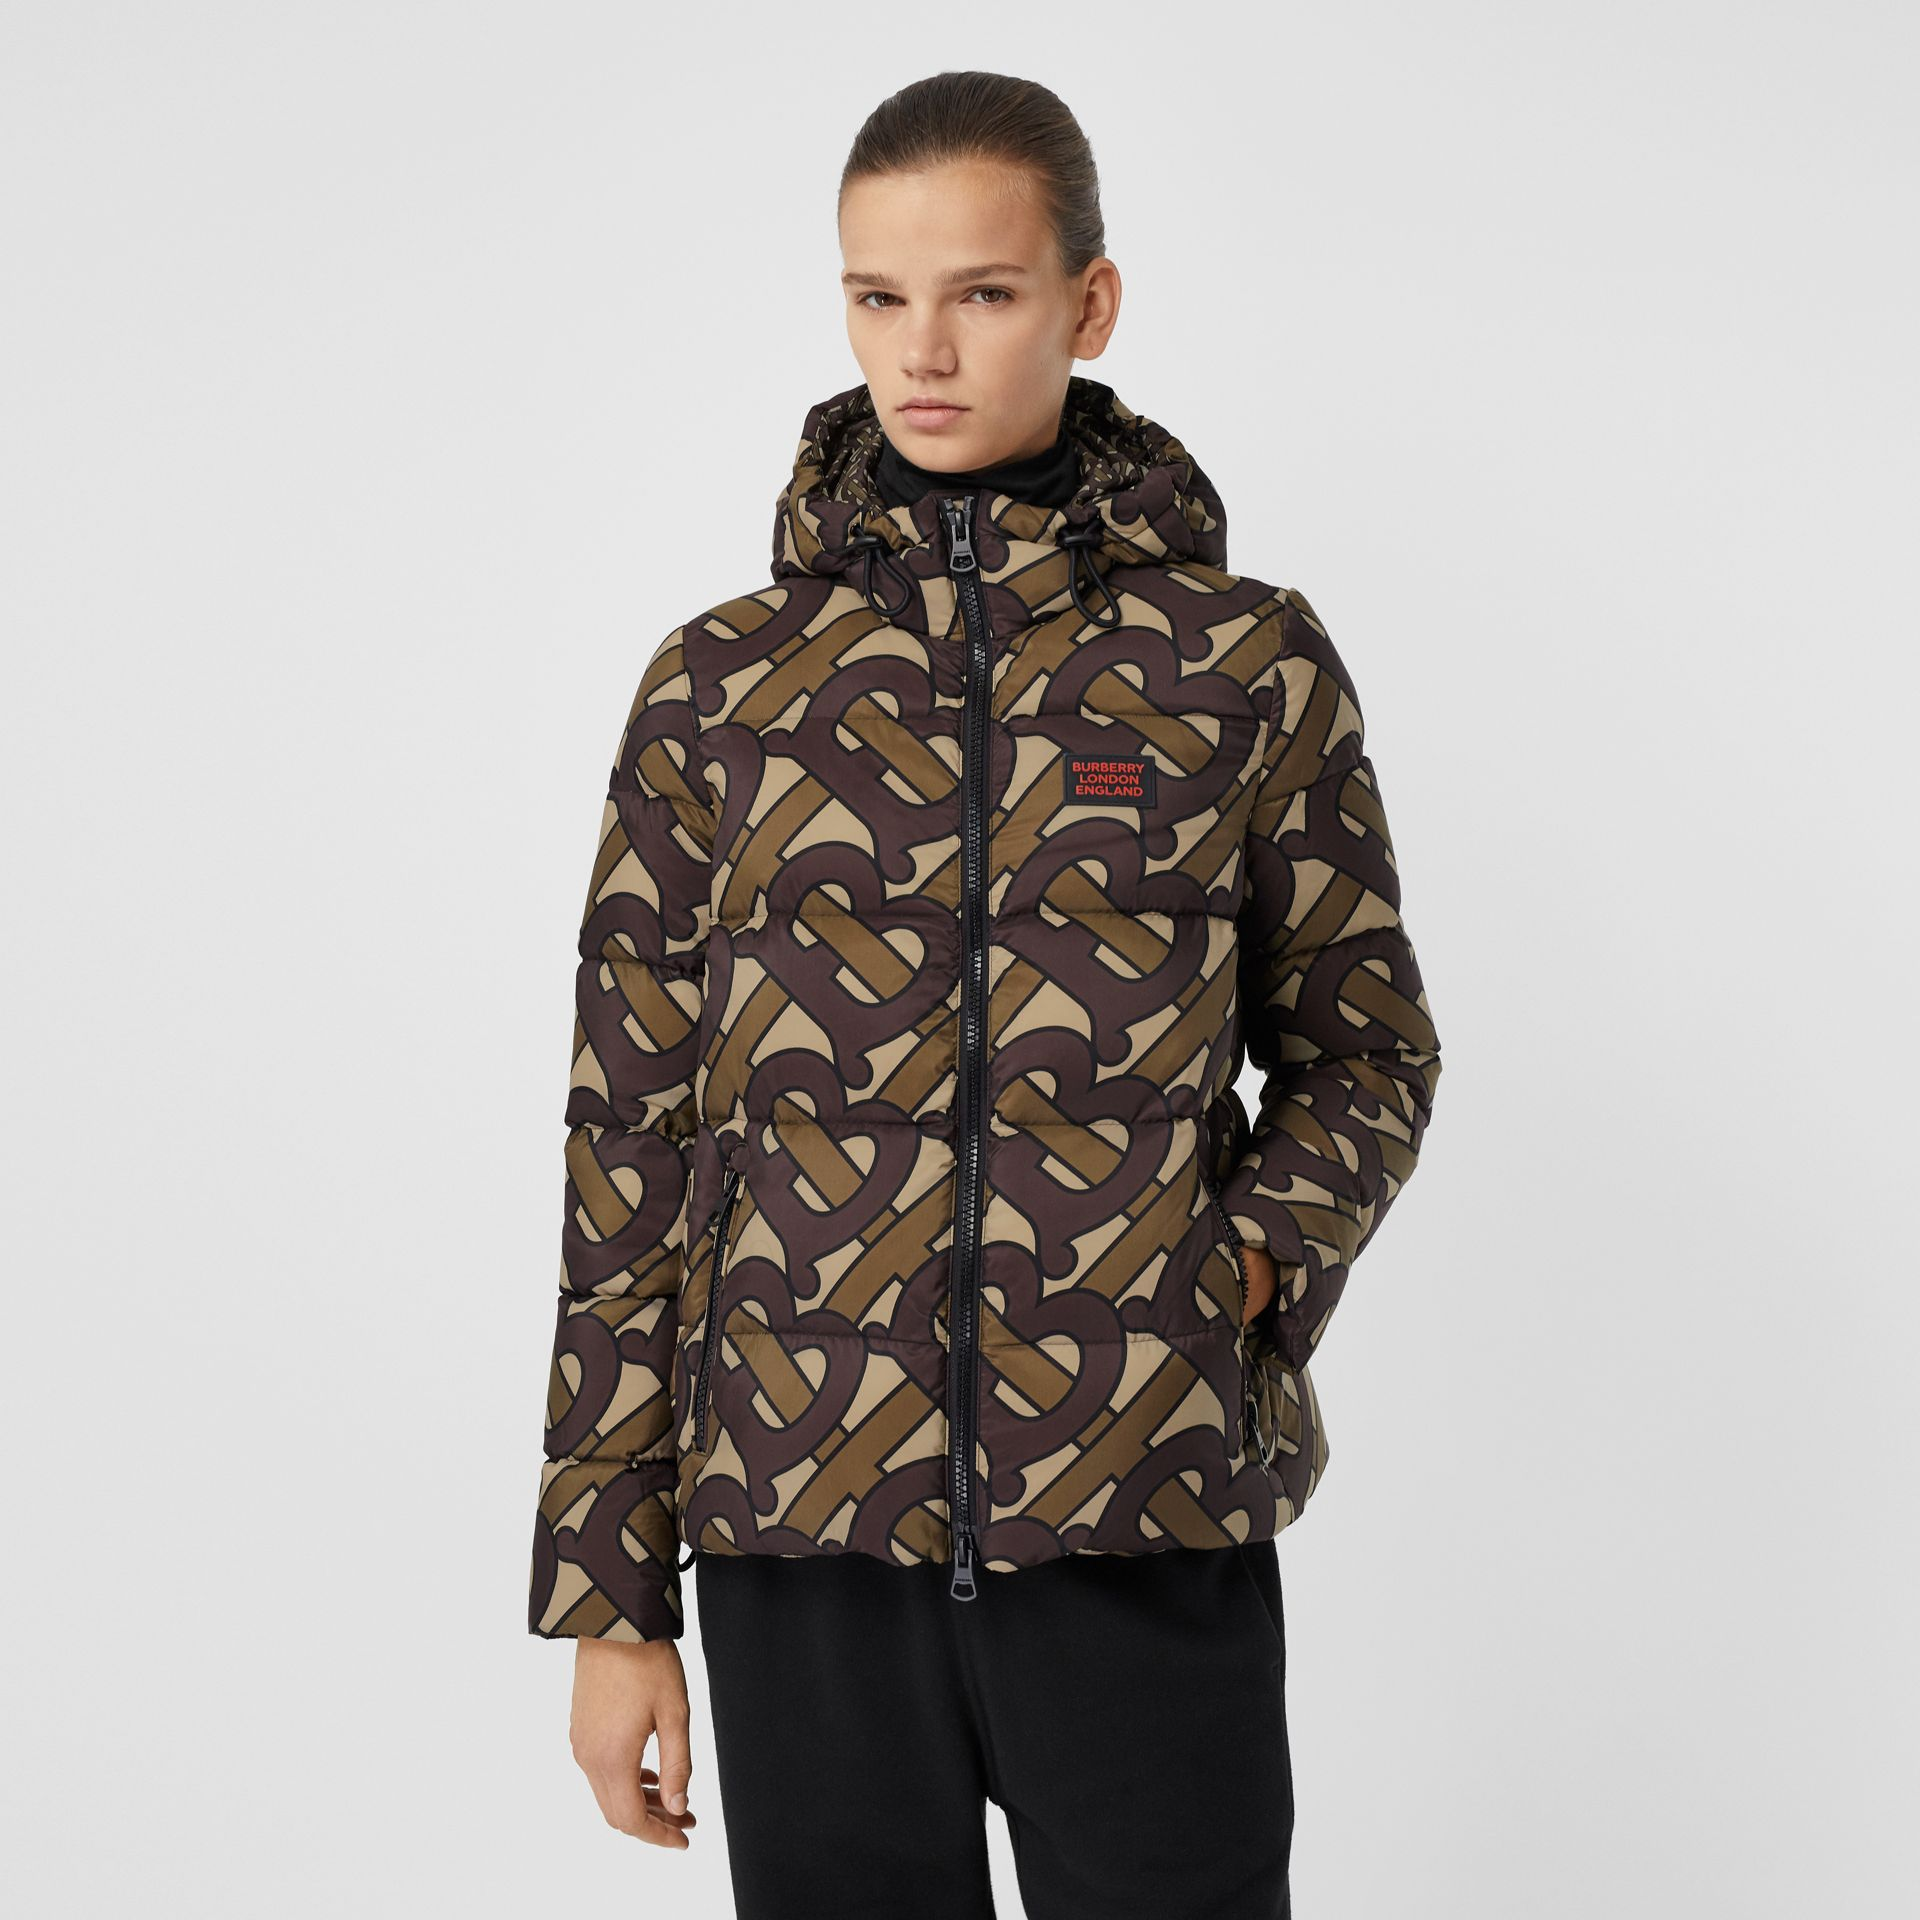 Monogram Print Hooded Puffer Jacket in Bridle Brown - Women | Burberry United States - gallery image 4